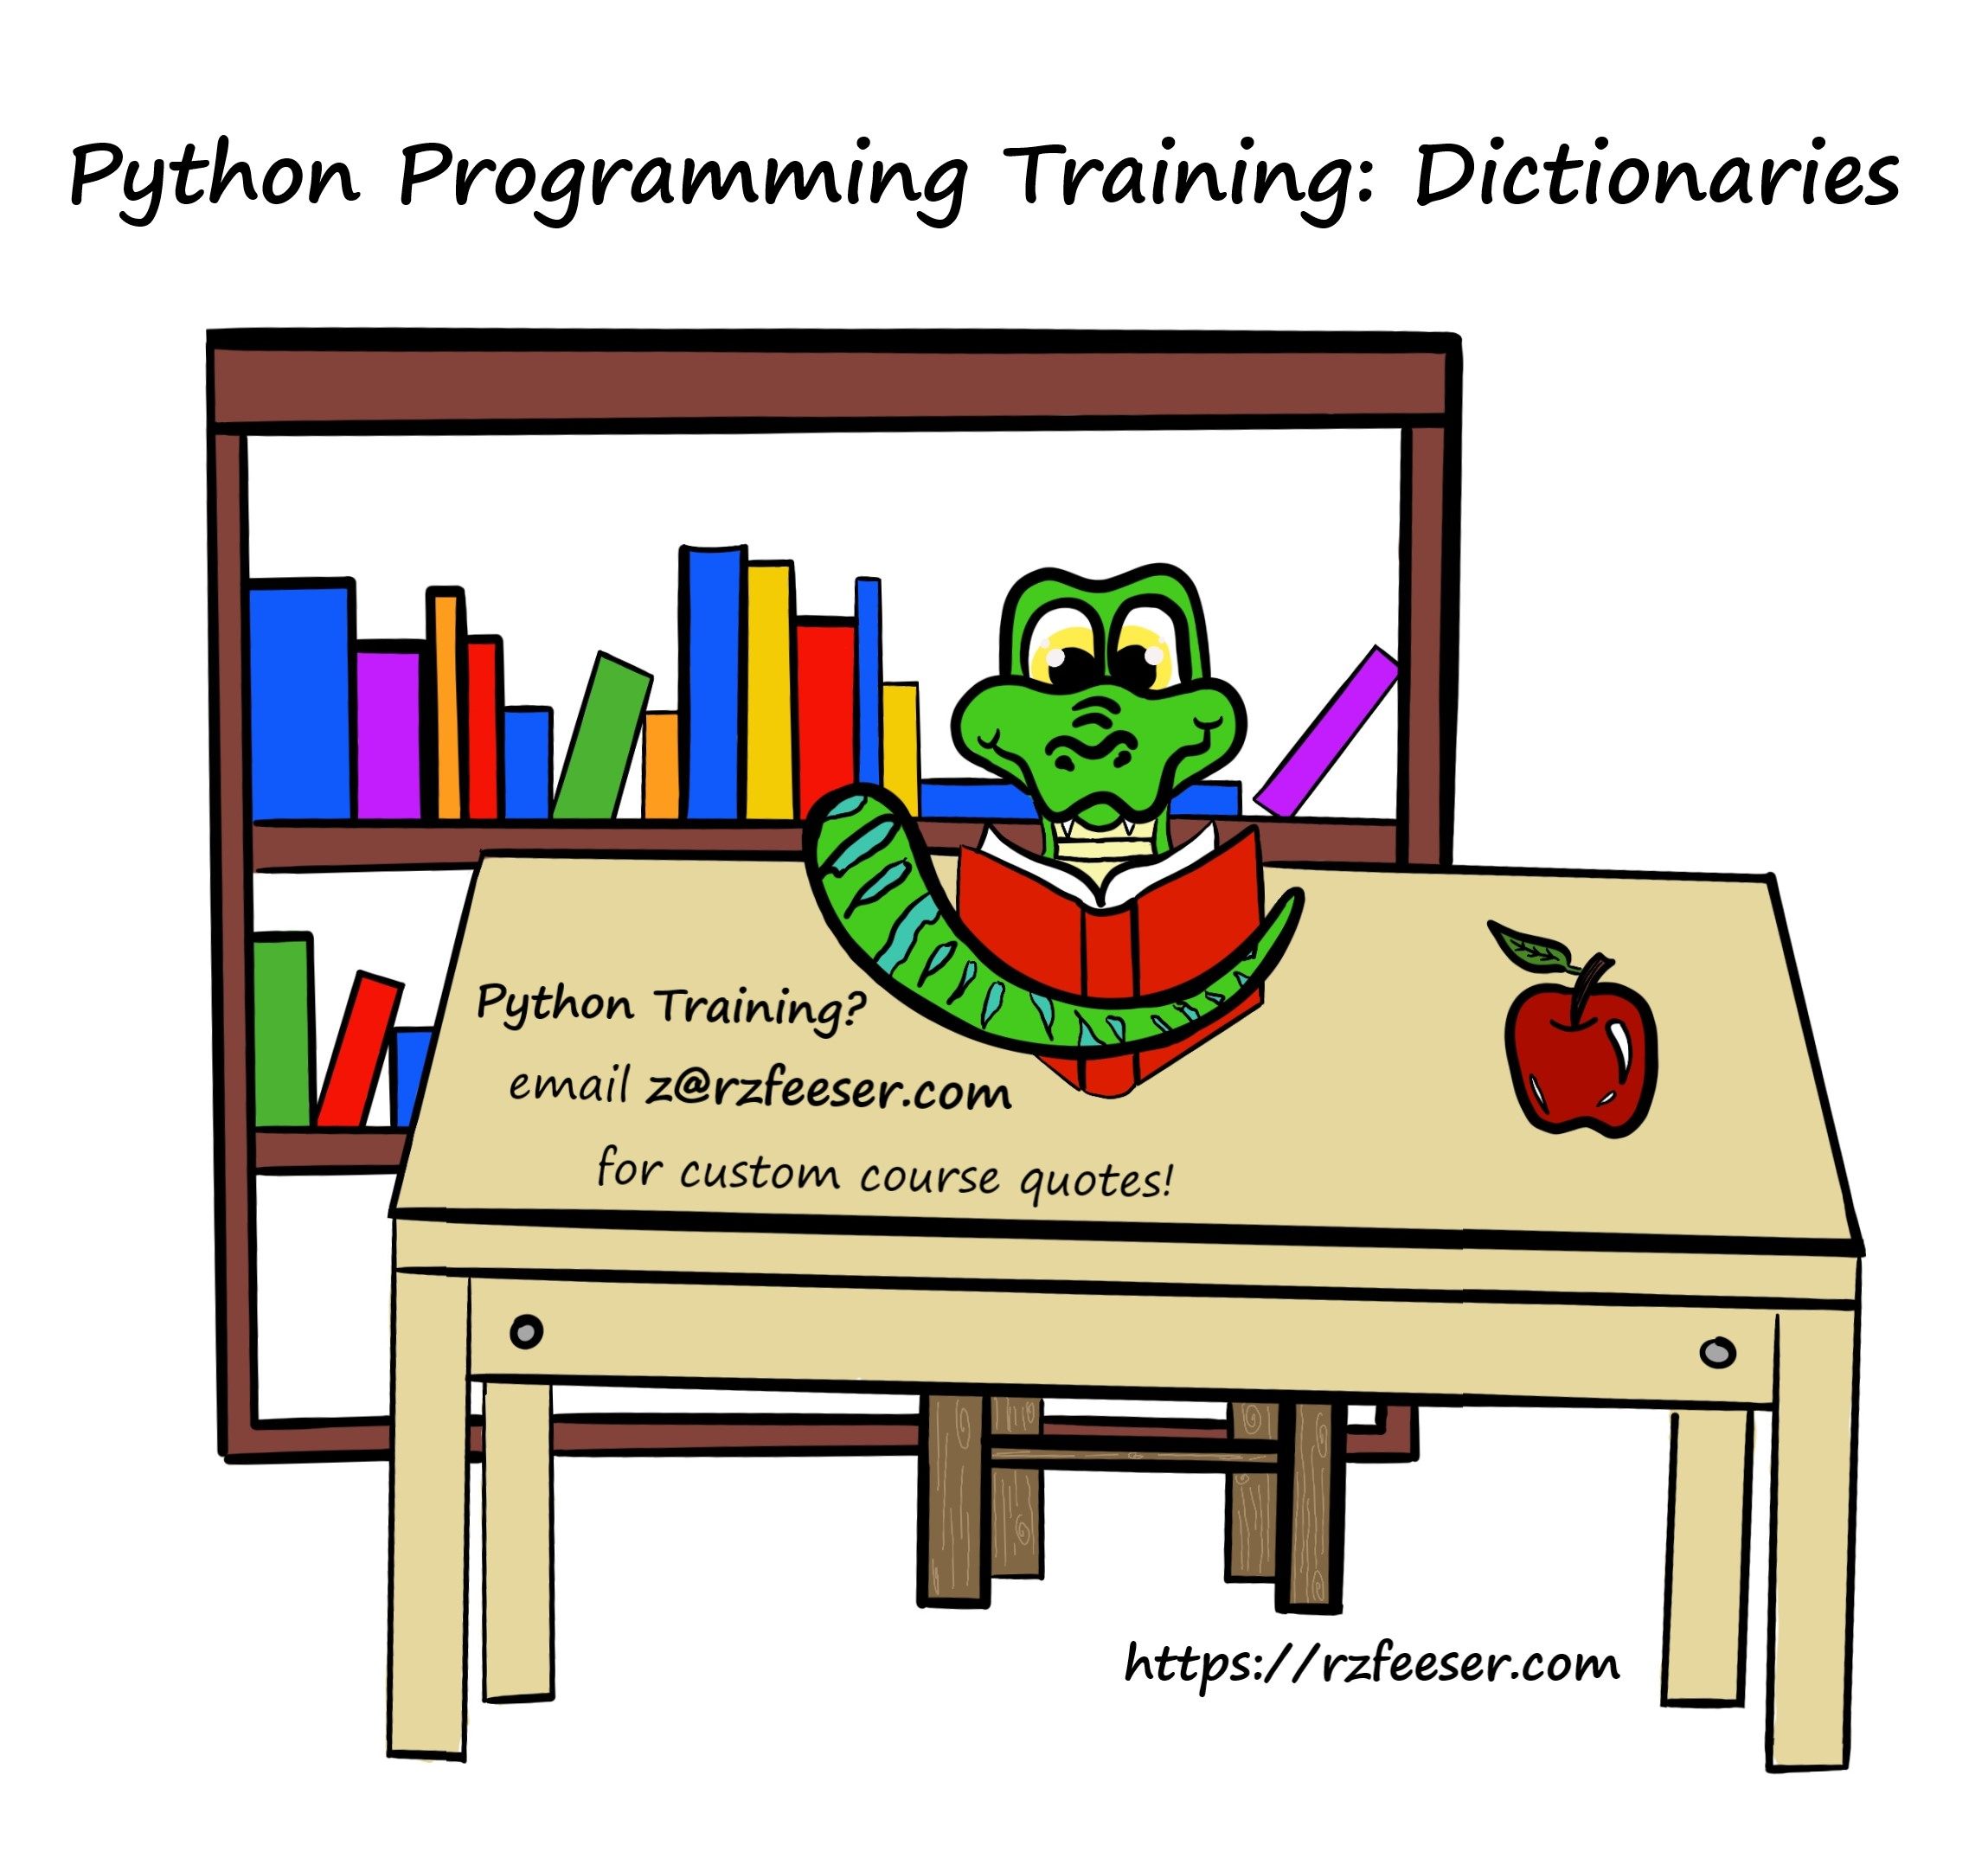 Python Programming Training Dictionaries with RZFeeser